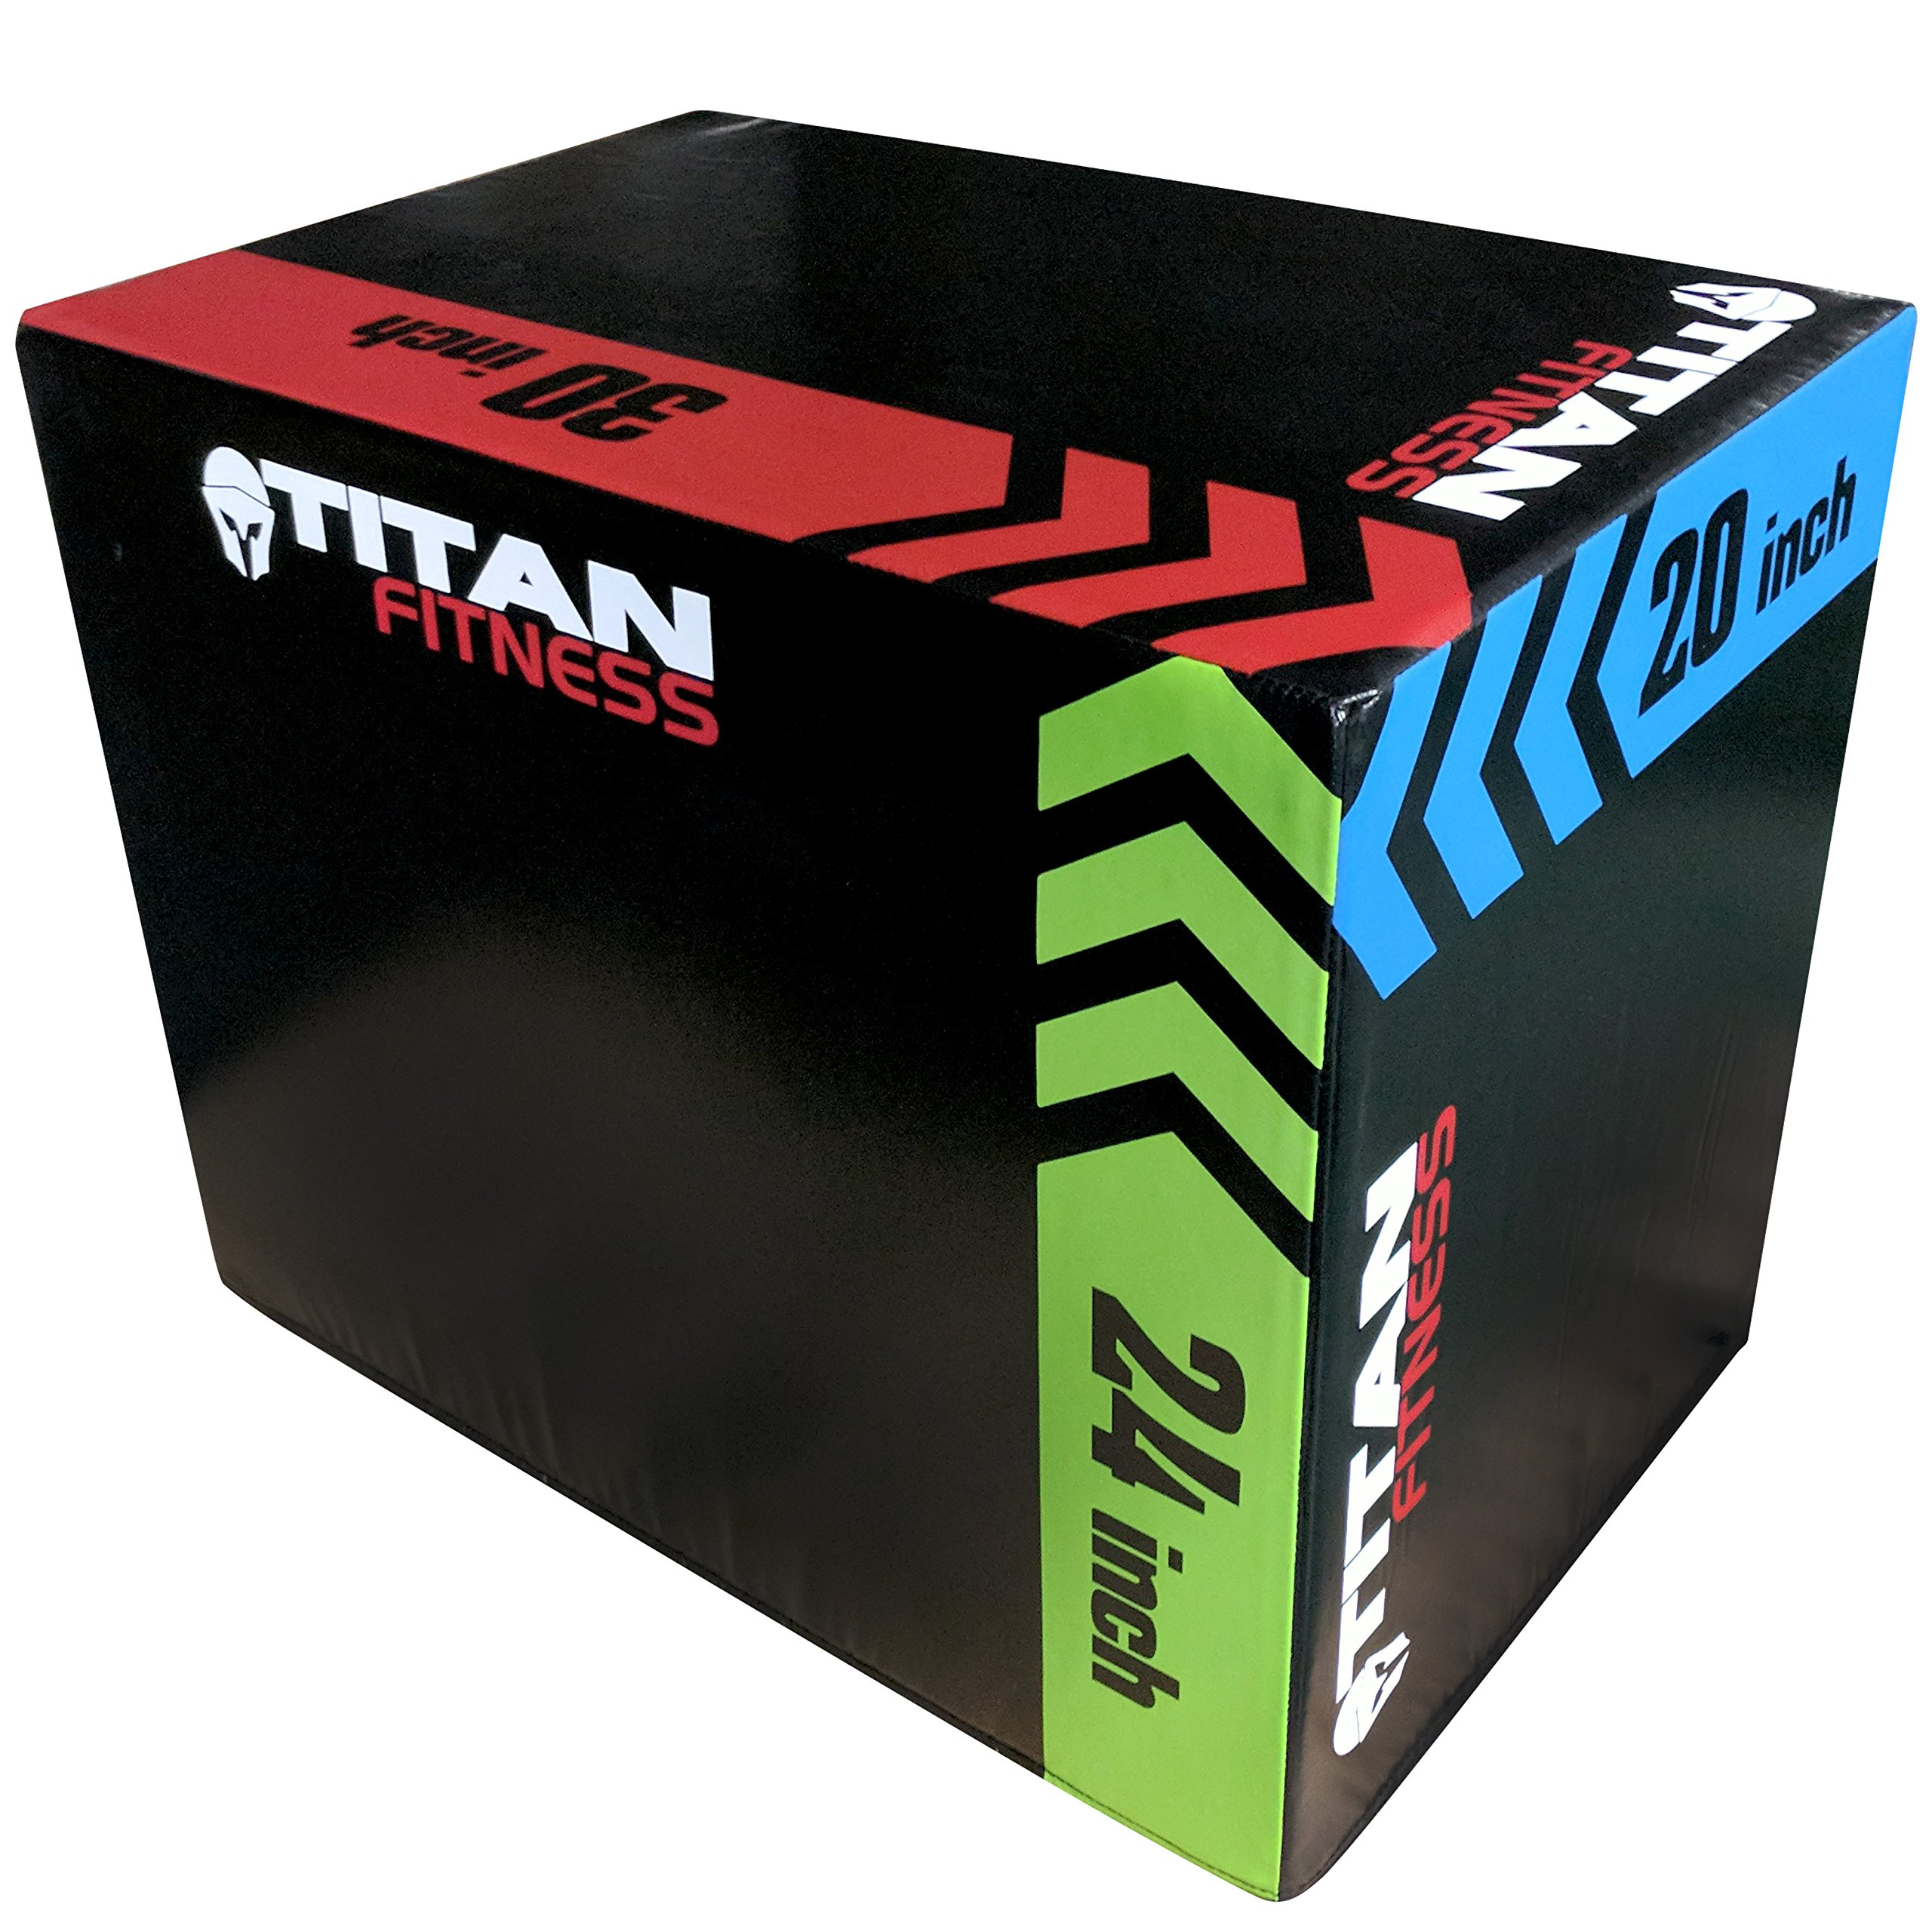 TITAN FITNESS 3-in-1 Portable Foam Plyometric Box, Jumping Exercise Equipment by TITAN FITNESS (Image #1)